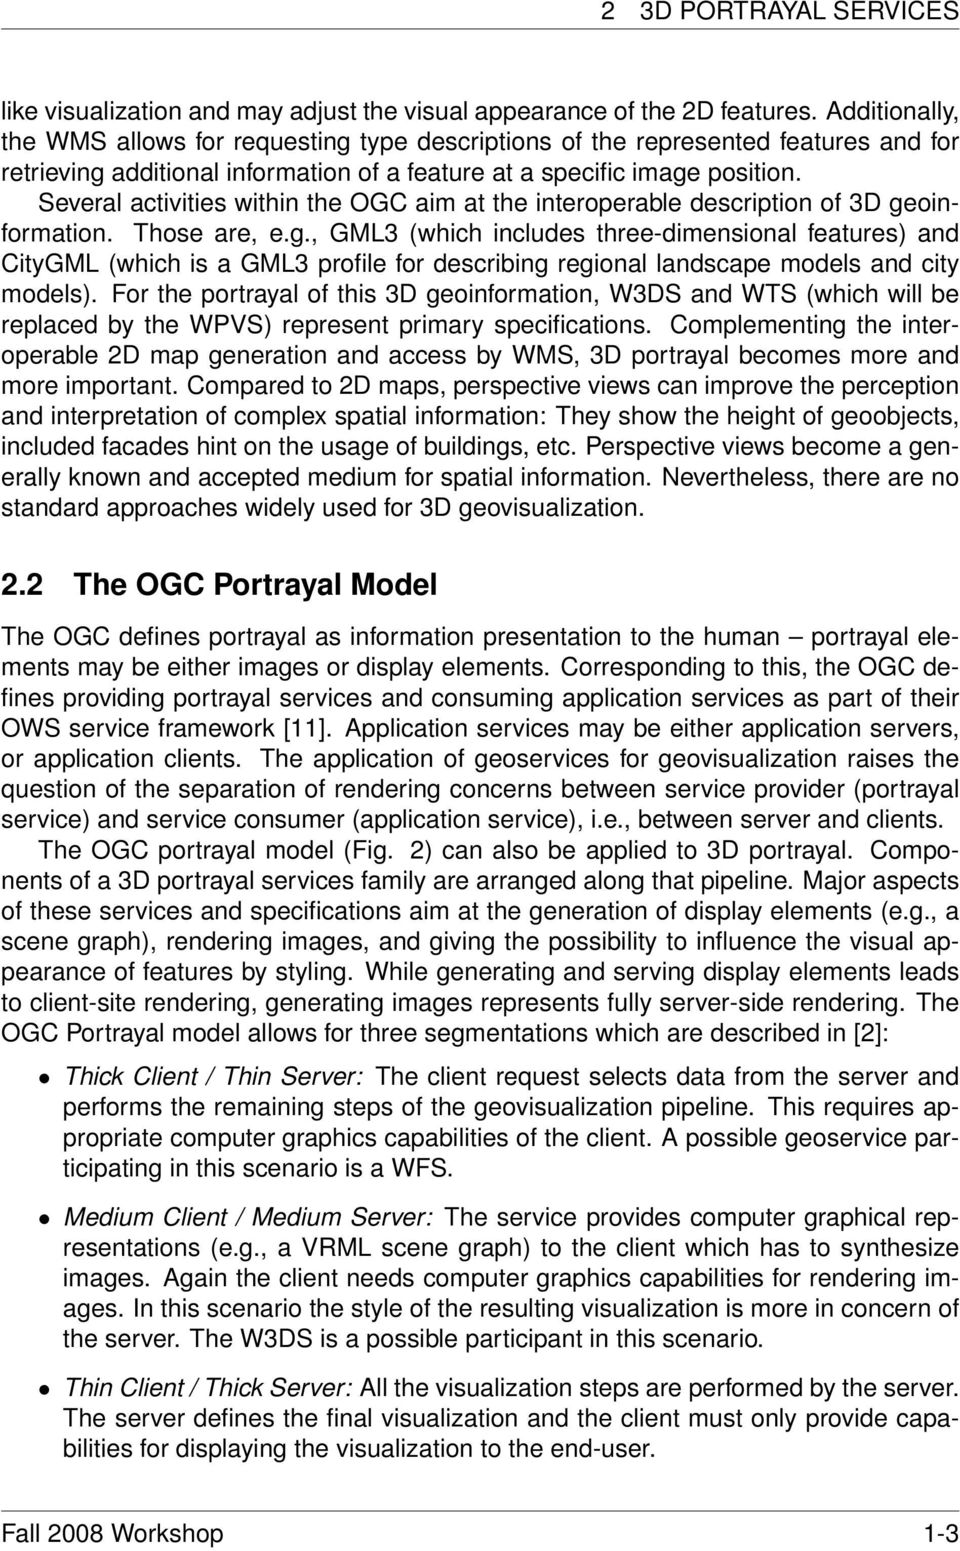 Several activities within the OGC aim at the interoperable description of 3D ge